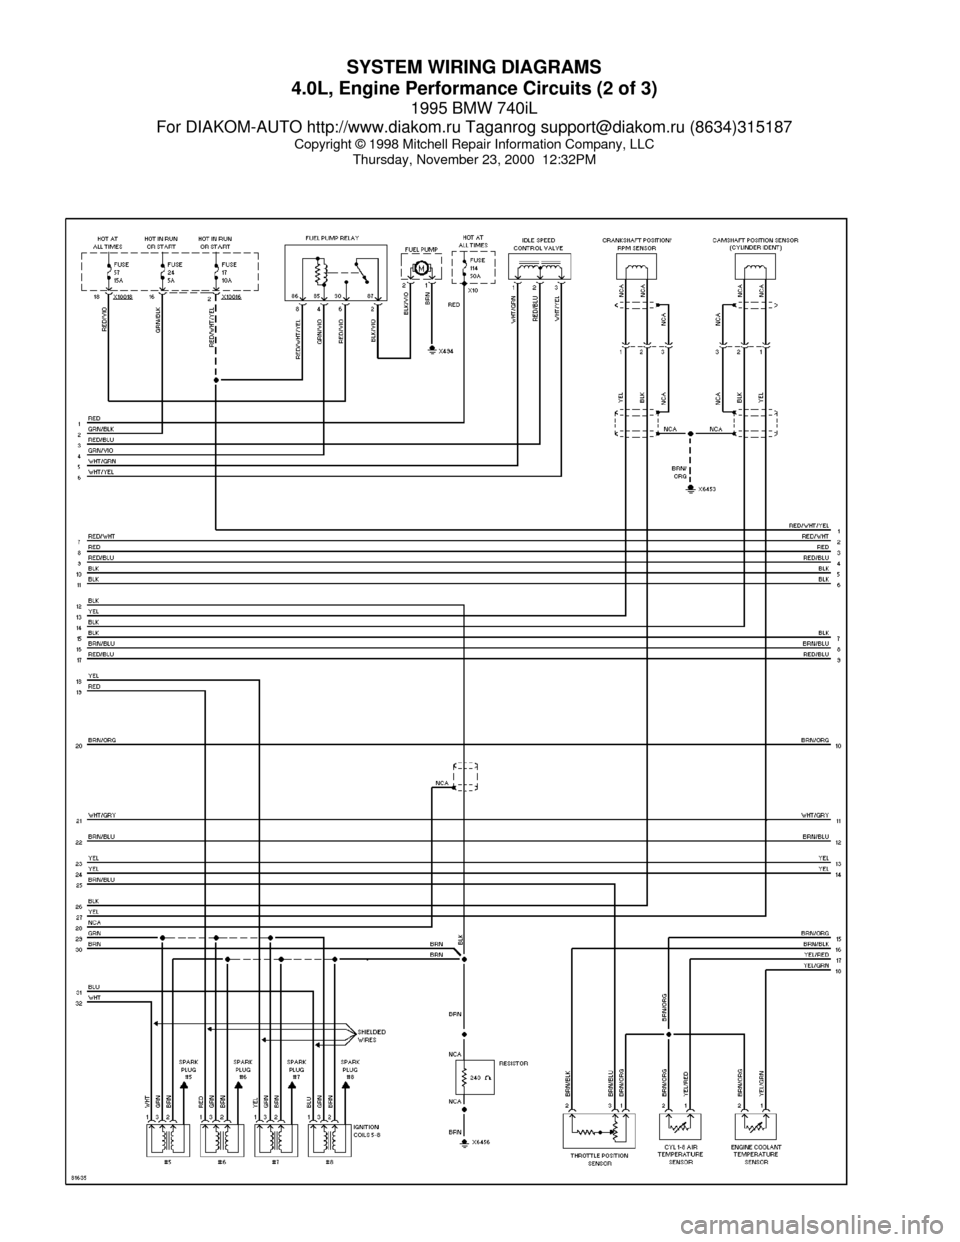 bmw 740il 1995 e38 system wiring diagrams, Wiring diagram